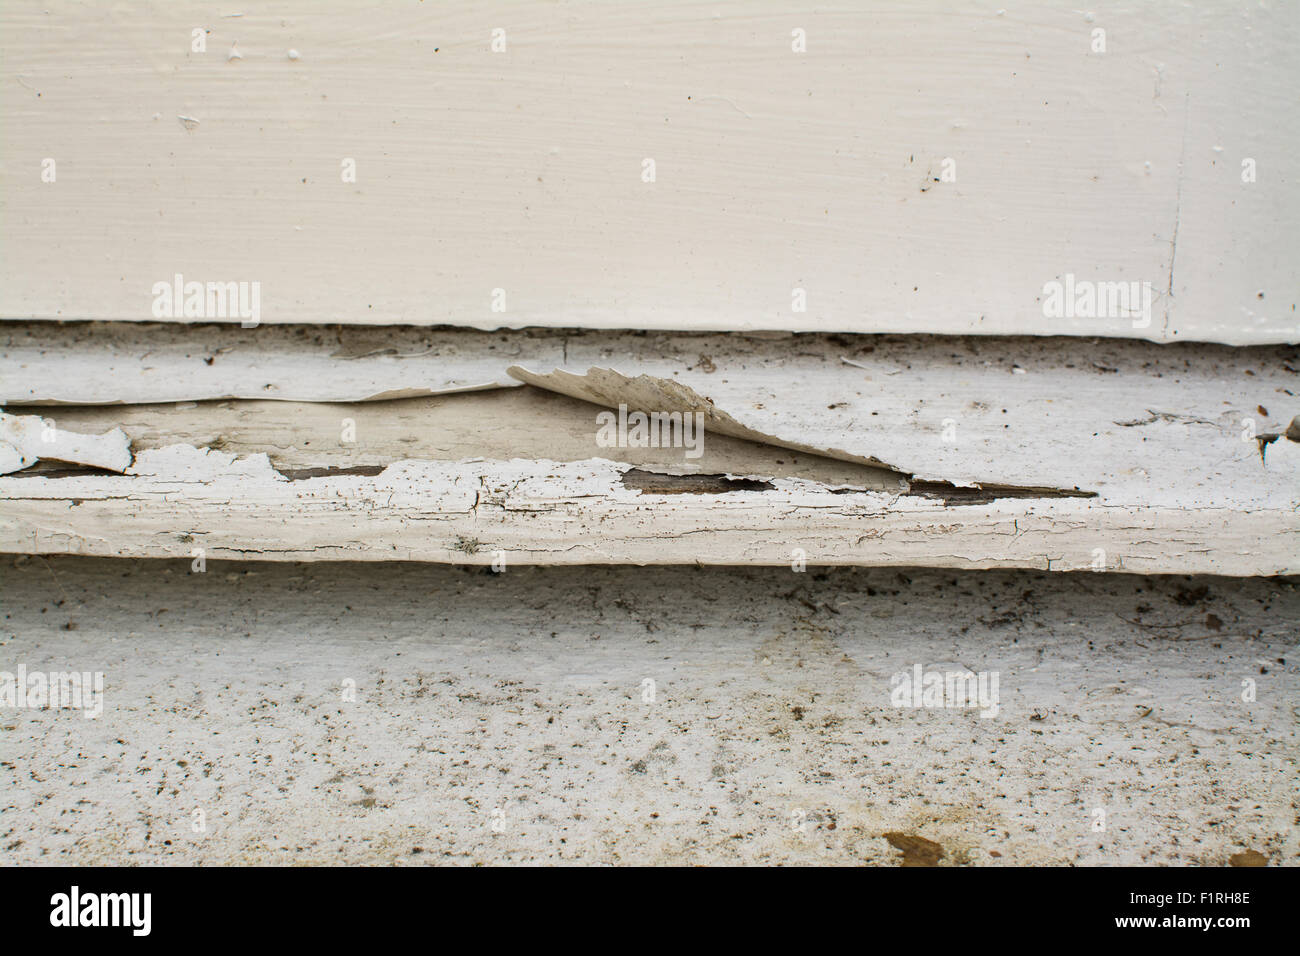 cracked paint peeling off external wooden window sill - Stock Image